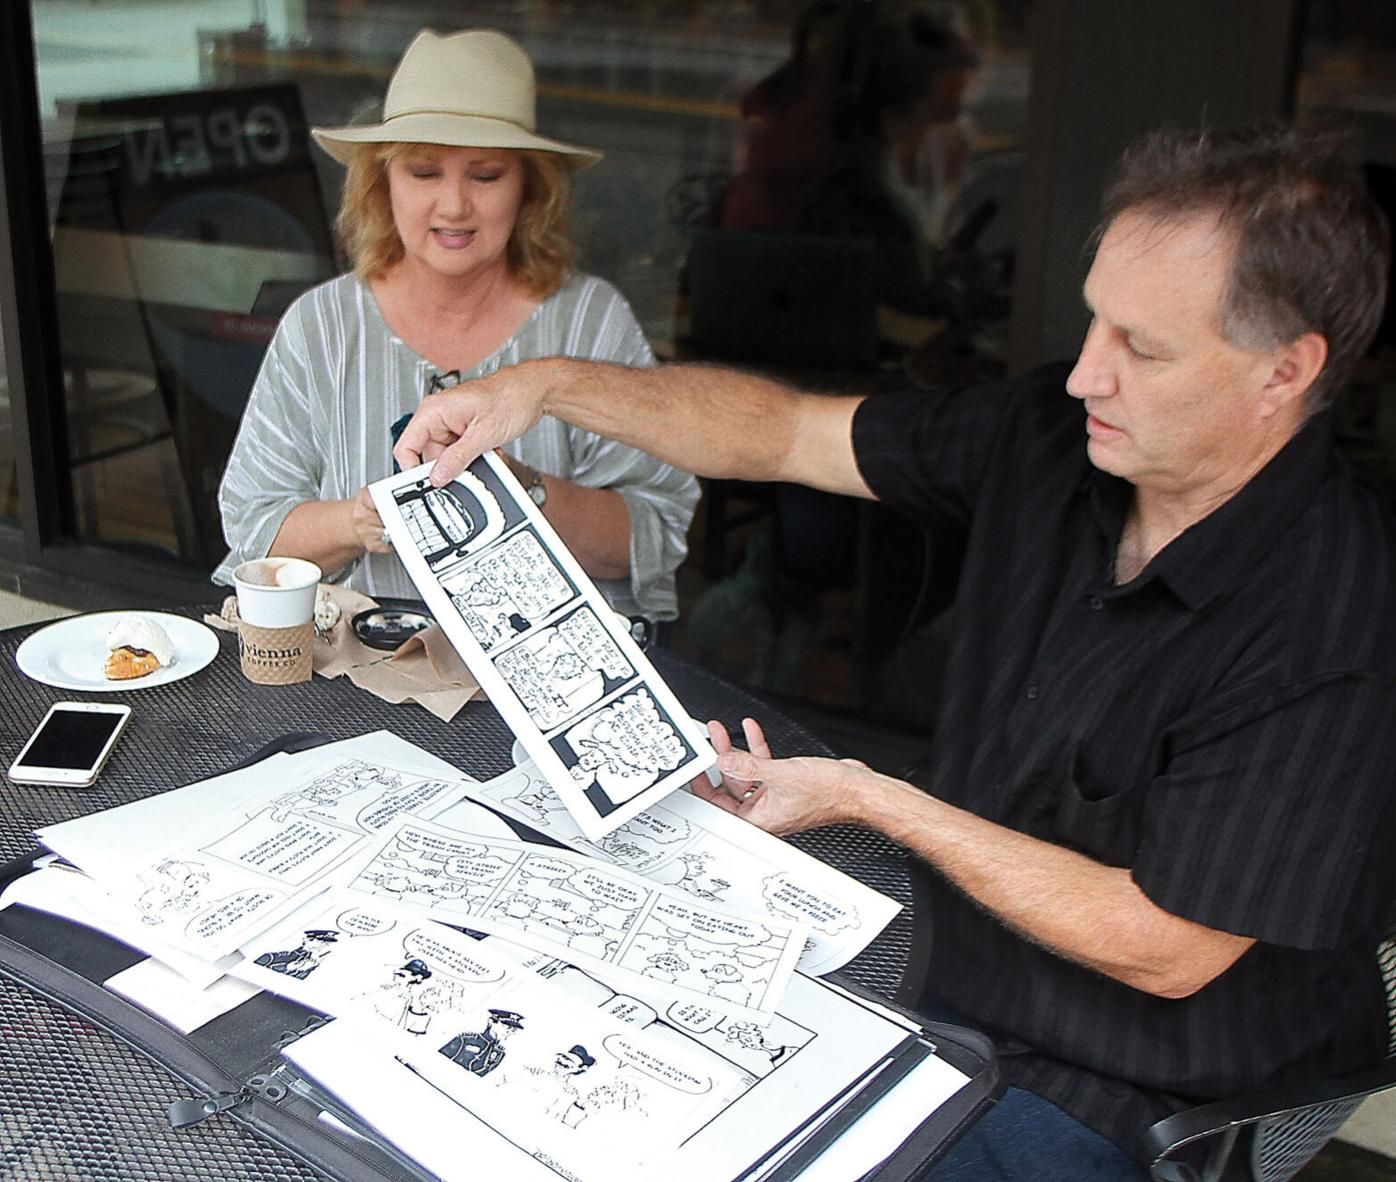 Dave and Doreen Dotson talk about the comic series they draw